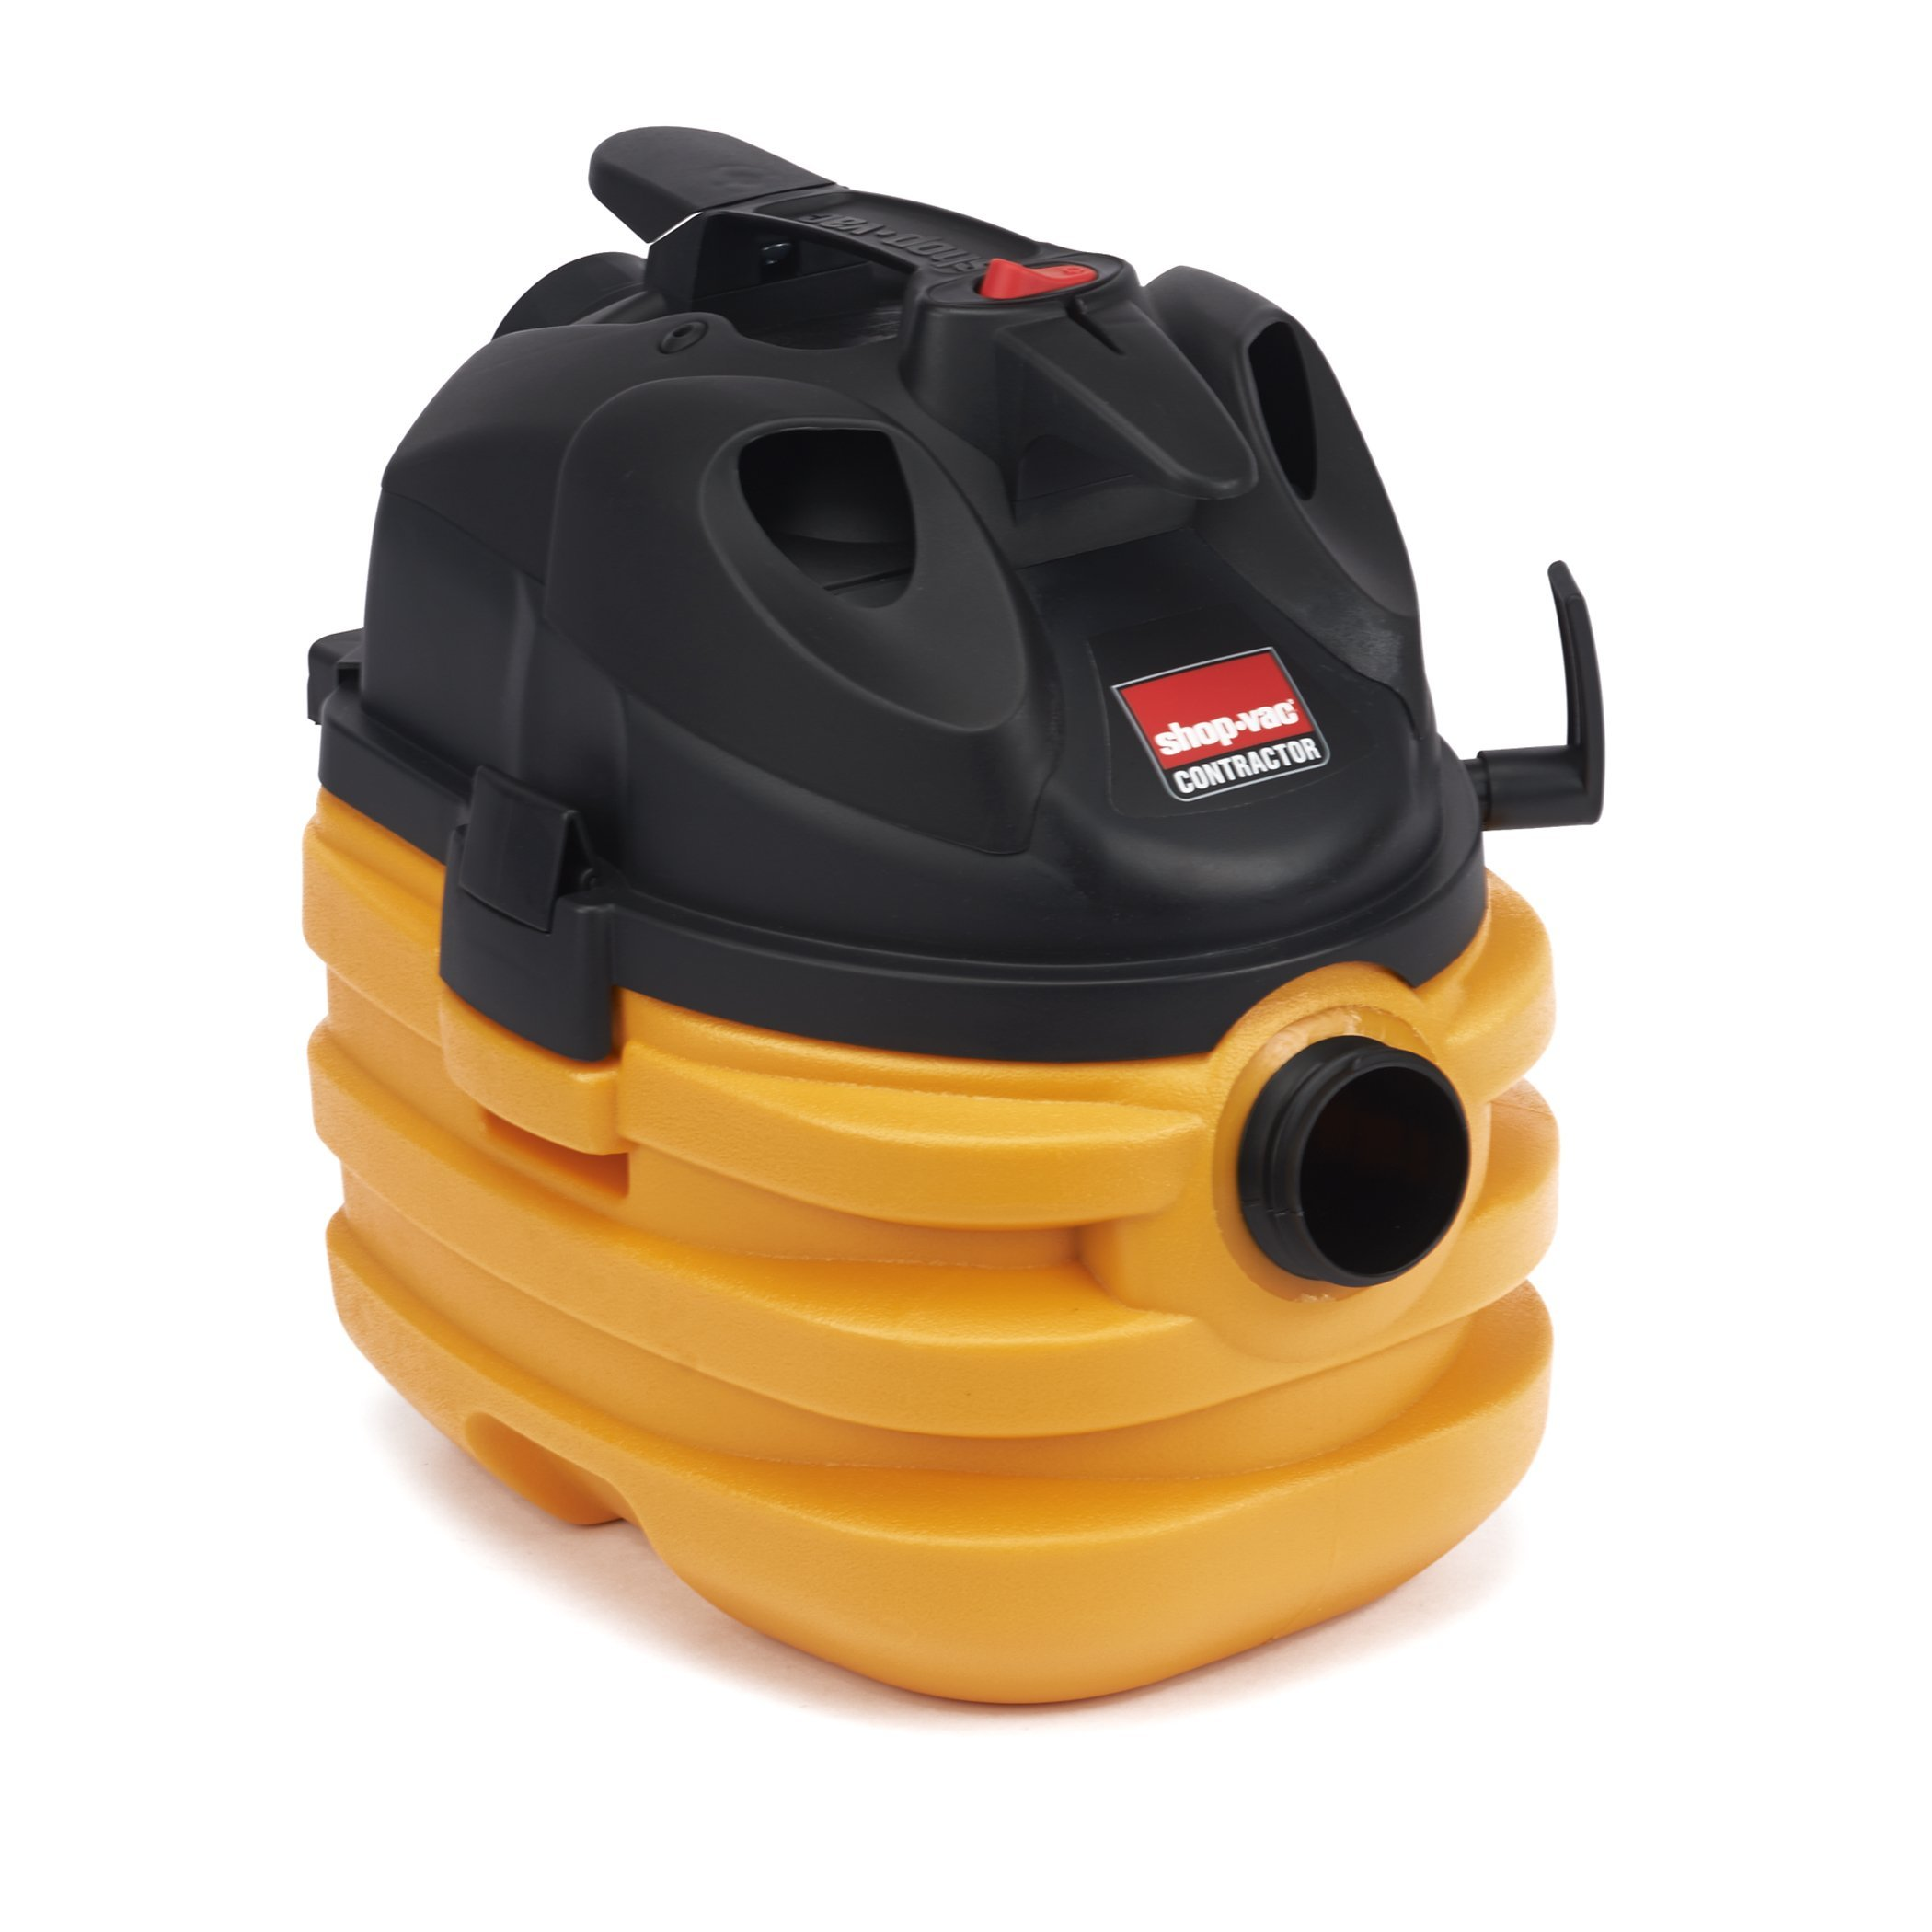 Shop-Vac 5872810 6.0 Peak HP Heavy Duty Portable Vacuum, 5 gallon, Yellow/Black by Shop-Vac